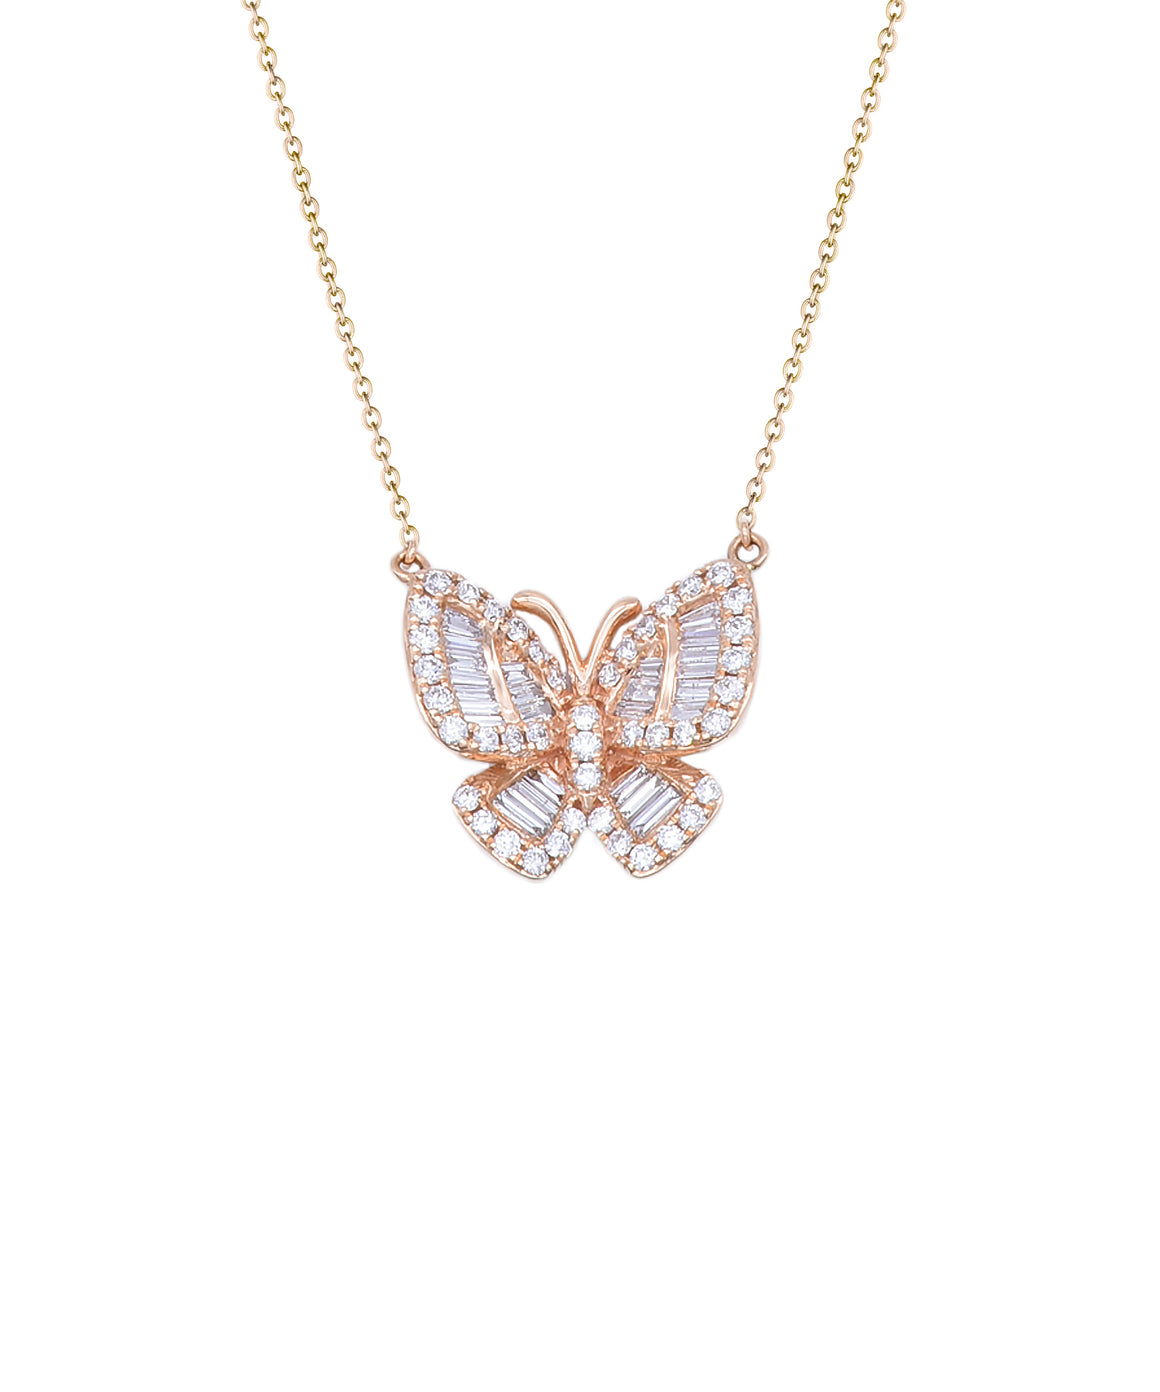 Baguette butterfly necklace - Lesley Ann Jewels